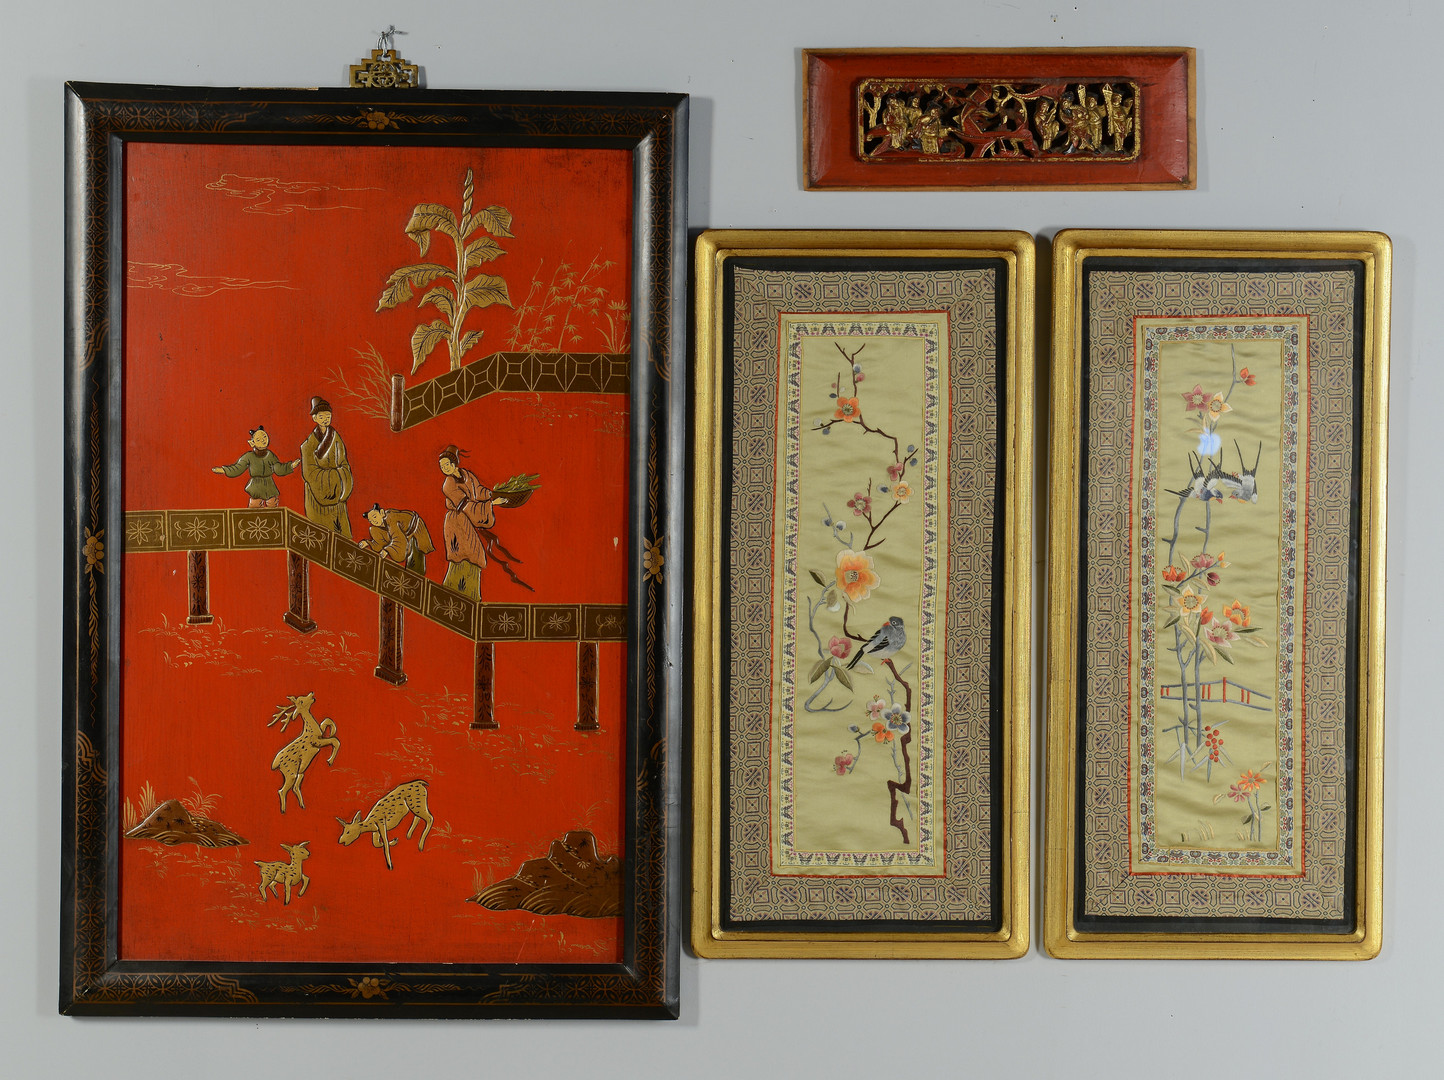 Lot 739: 5 Asian Framed Items: textiles, lacquer and woodcu